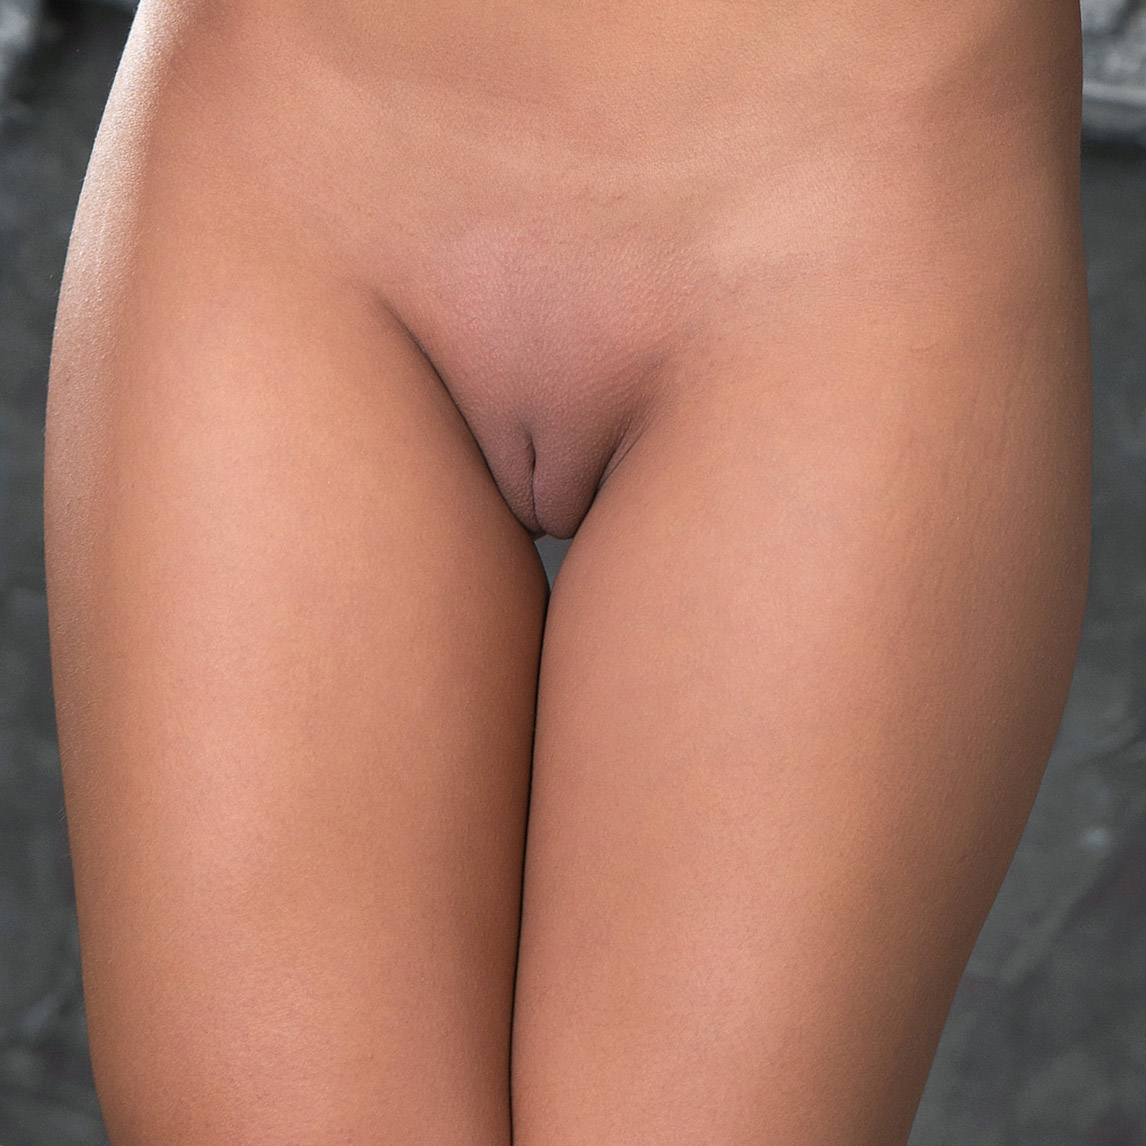 Shaved vulva brazilian picture — 7